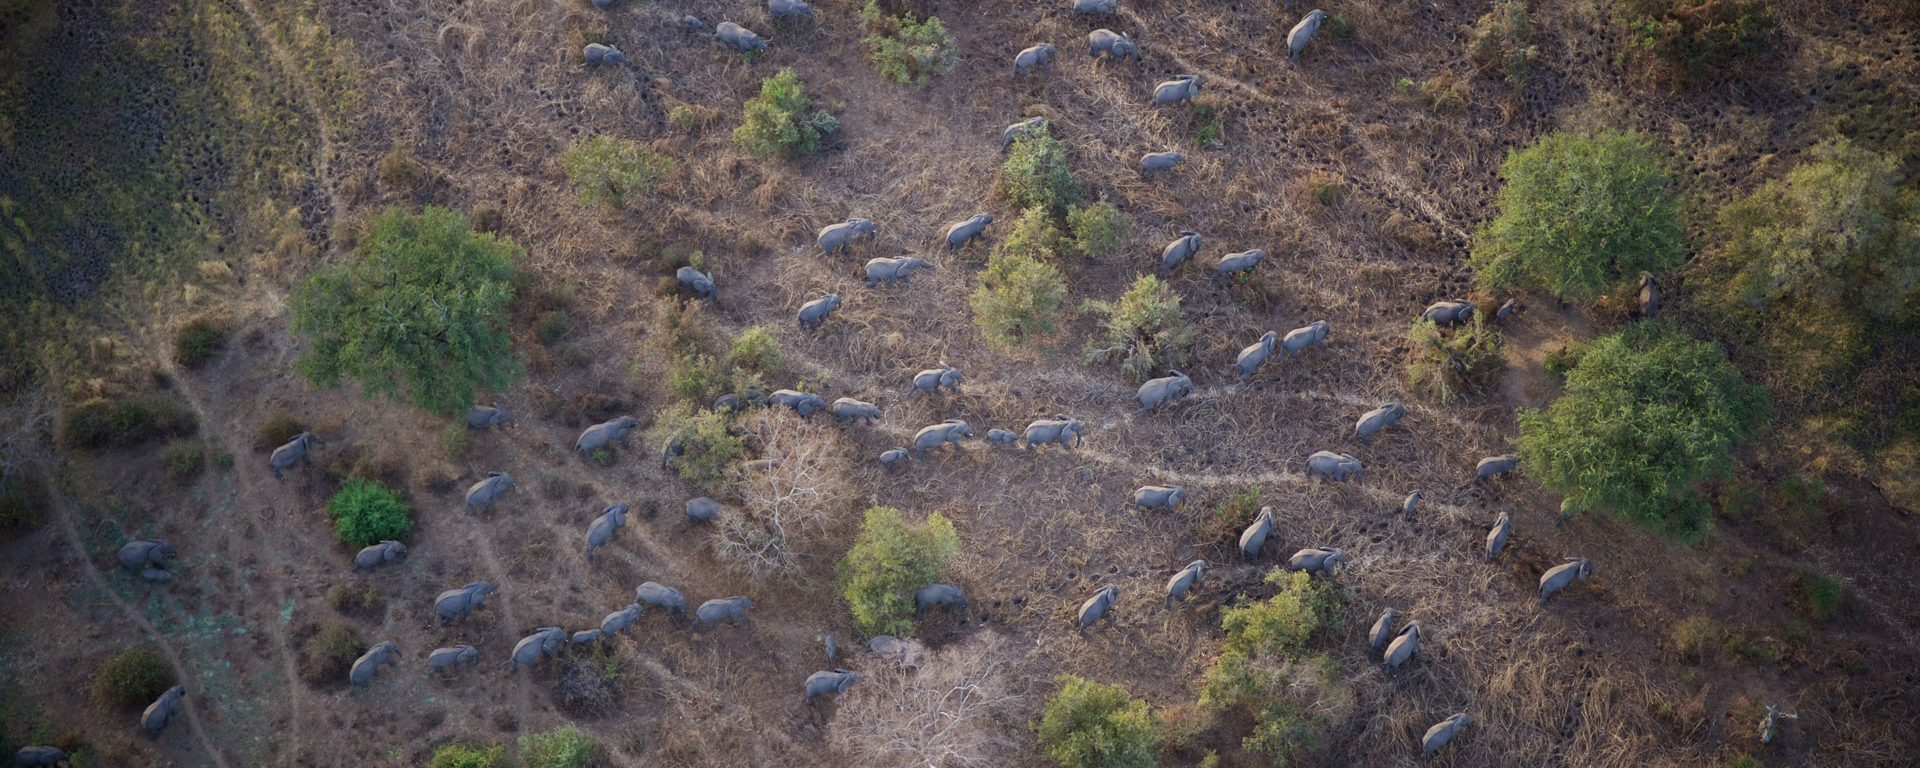 Aerial view of a herd of elephants in Zakouma National Park, Chad